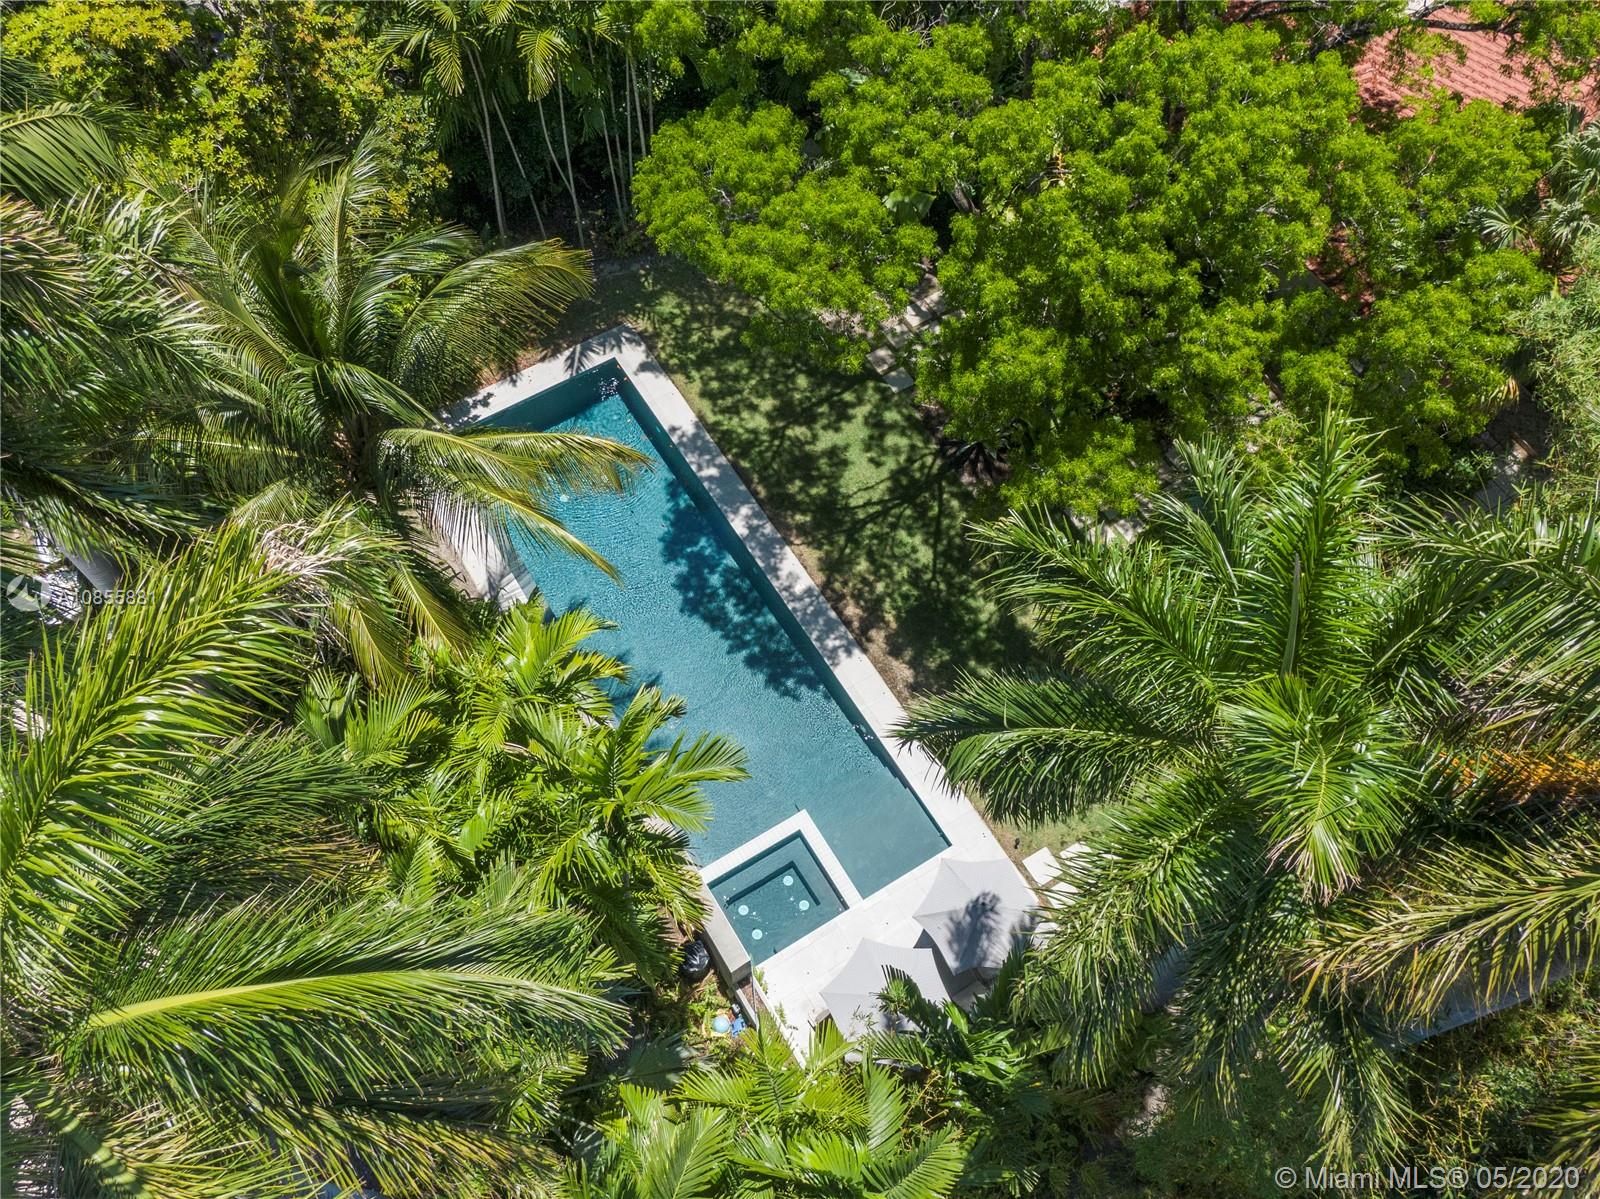 621 NE 55th St, Miami, Florida 33137, 4 Bedrooms Bedrooms, ,4 BathroomsBathrooms,Residential,For Sale,621 NE 55th St,A10855881